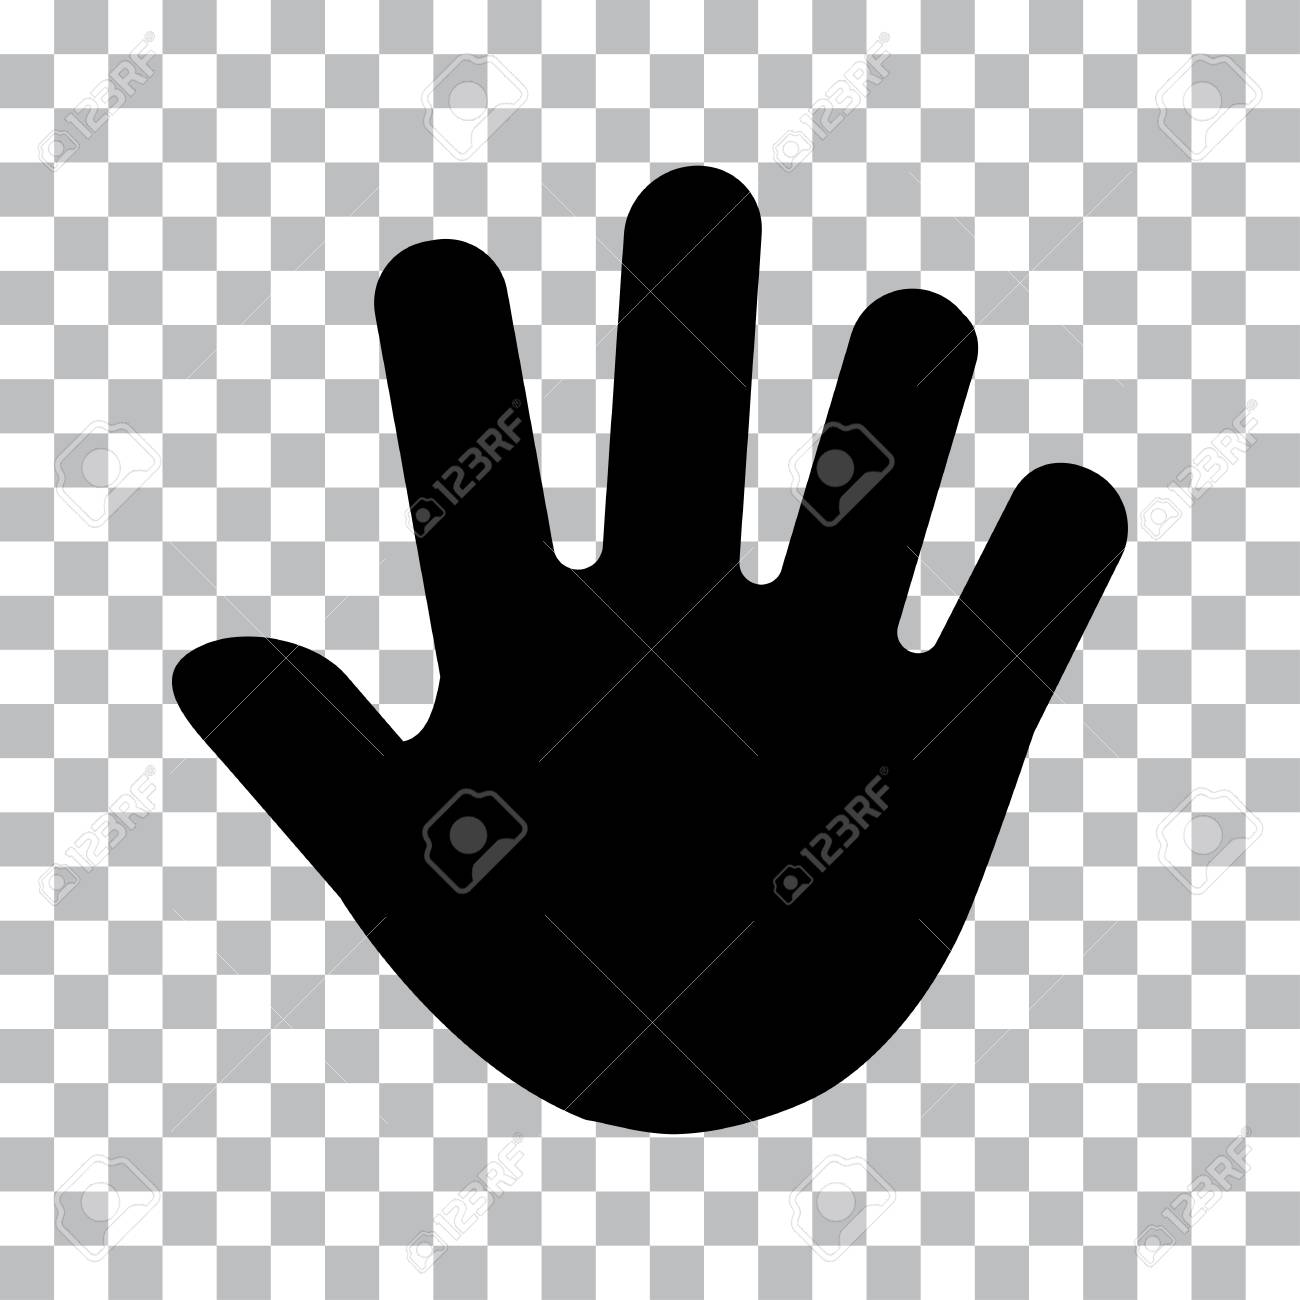 Human hand print, palm. Black silhouettes on transparent background.